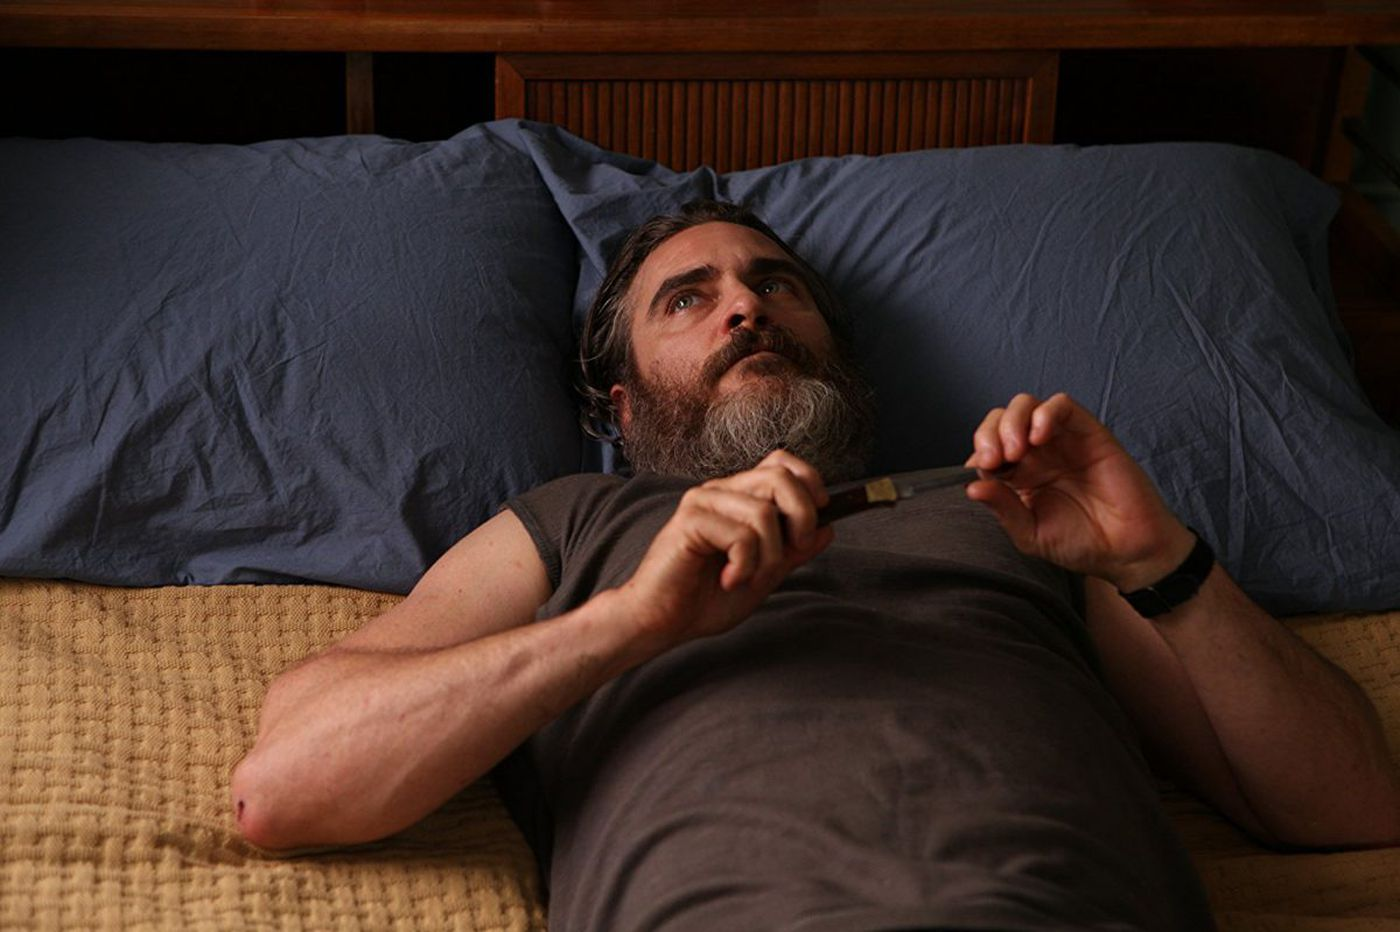 'You Were Never Really Here': Joaquin Phoenix's gruesome contract killer flick never really gels | Movie review